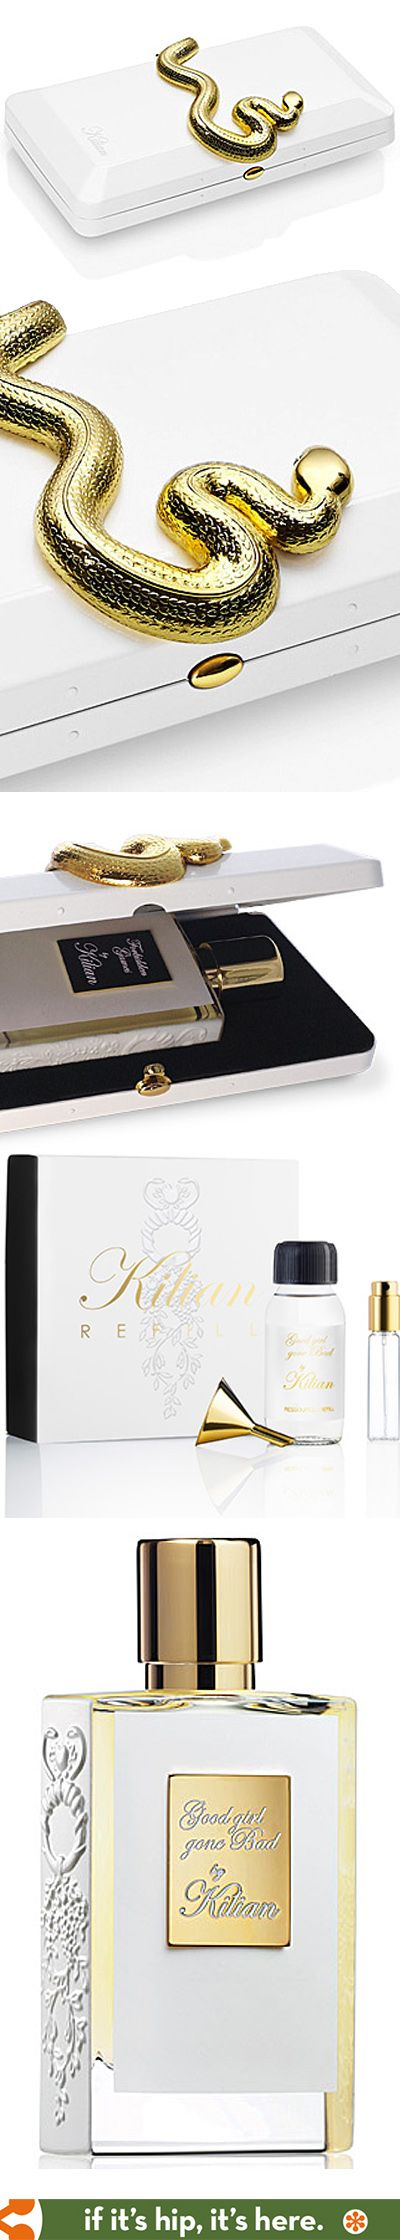 Kilian's Good Girl Gone Bad perfume in snake adorned box with refill. PD